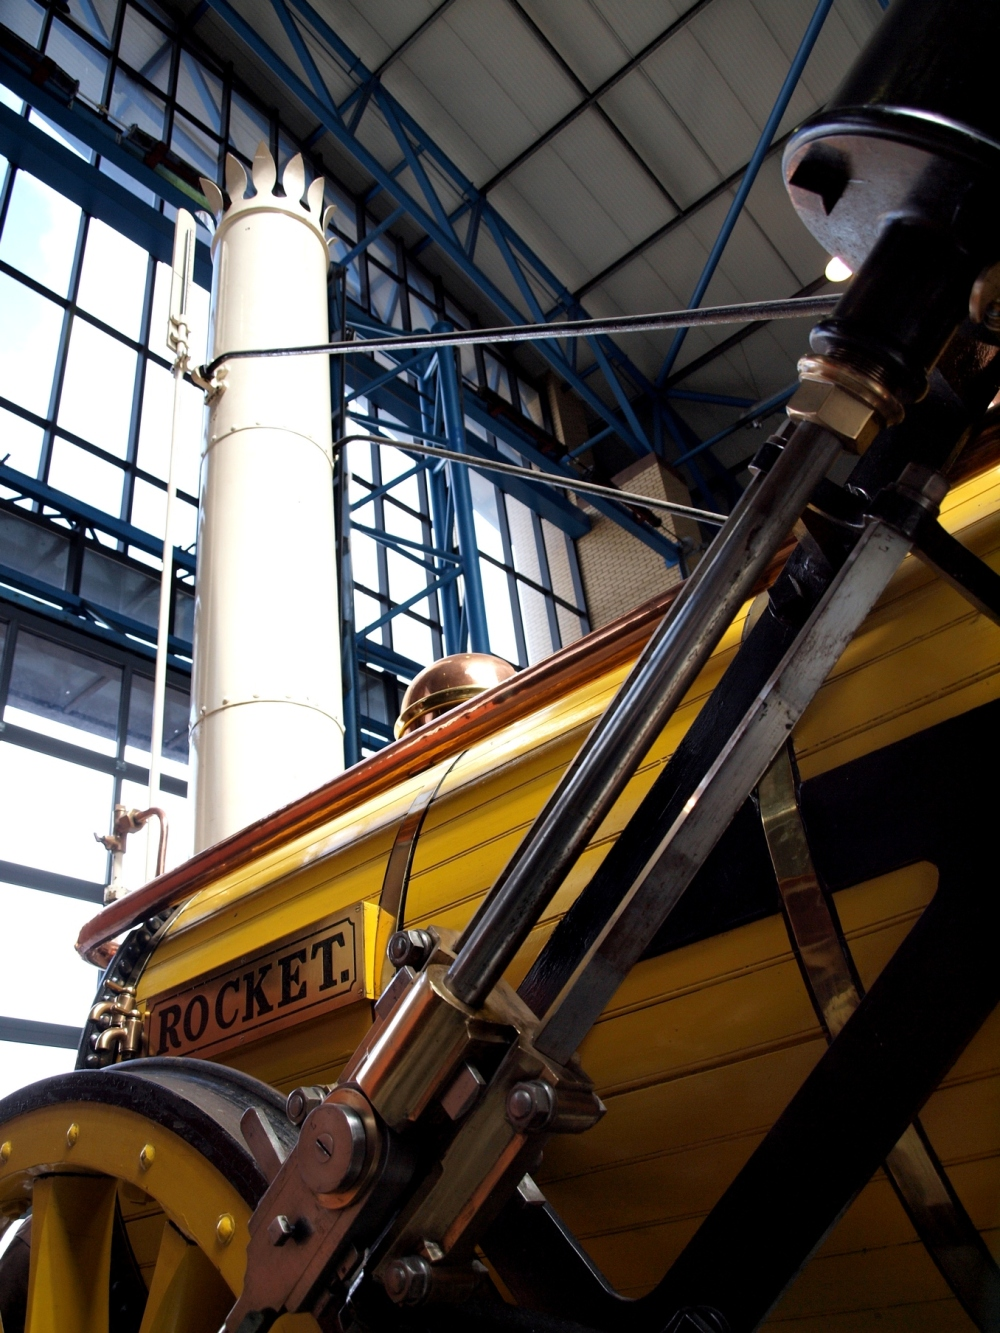 Stephenson's Rocket at the NRM